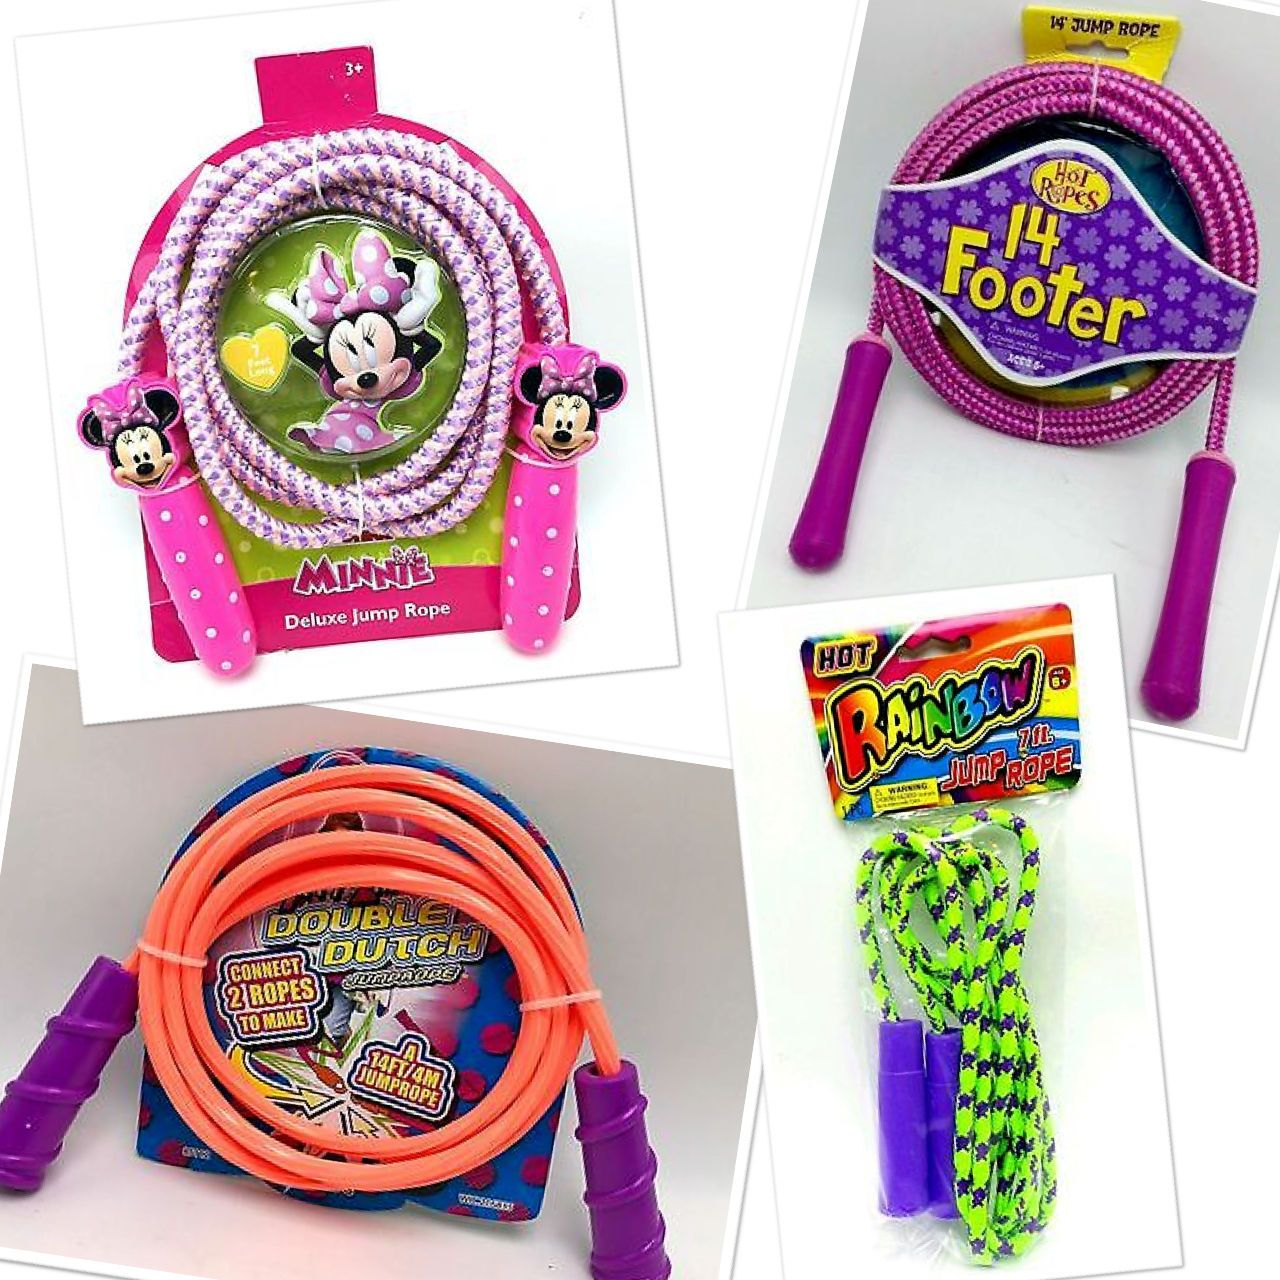 Jump Ropes Sports Plastic Handle 7 ft - 14 ft Skipping Jumping Jump Rope 14 feet Hot Ropes Pink Purple Deluxe Handle Jump Rope Plastic Handle7 ftSkipping Jumping FunFor Girls ages 6+ Disney Minnie Mouse Deluxe Handle Jump Rope New purchased for resale byKeywebco Video inspected during shipping Shipped fast and free from the USA The stock photo may include additional items for display purpose only - which will not be included. Packages may show wear or be opened if the battery is replaced or…